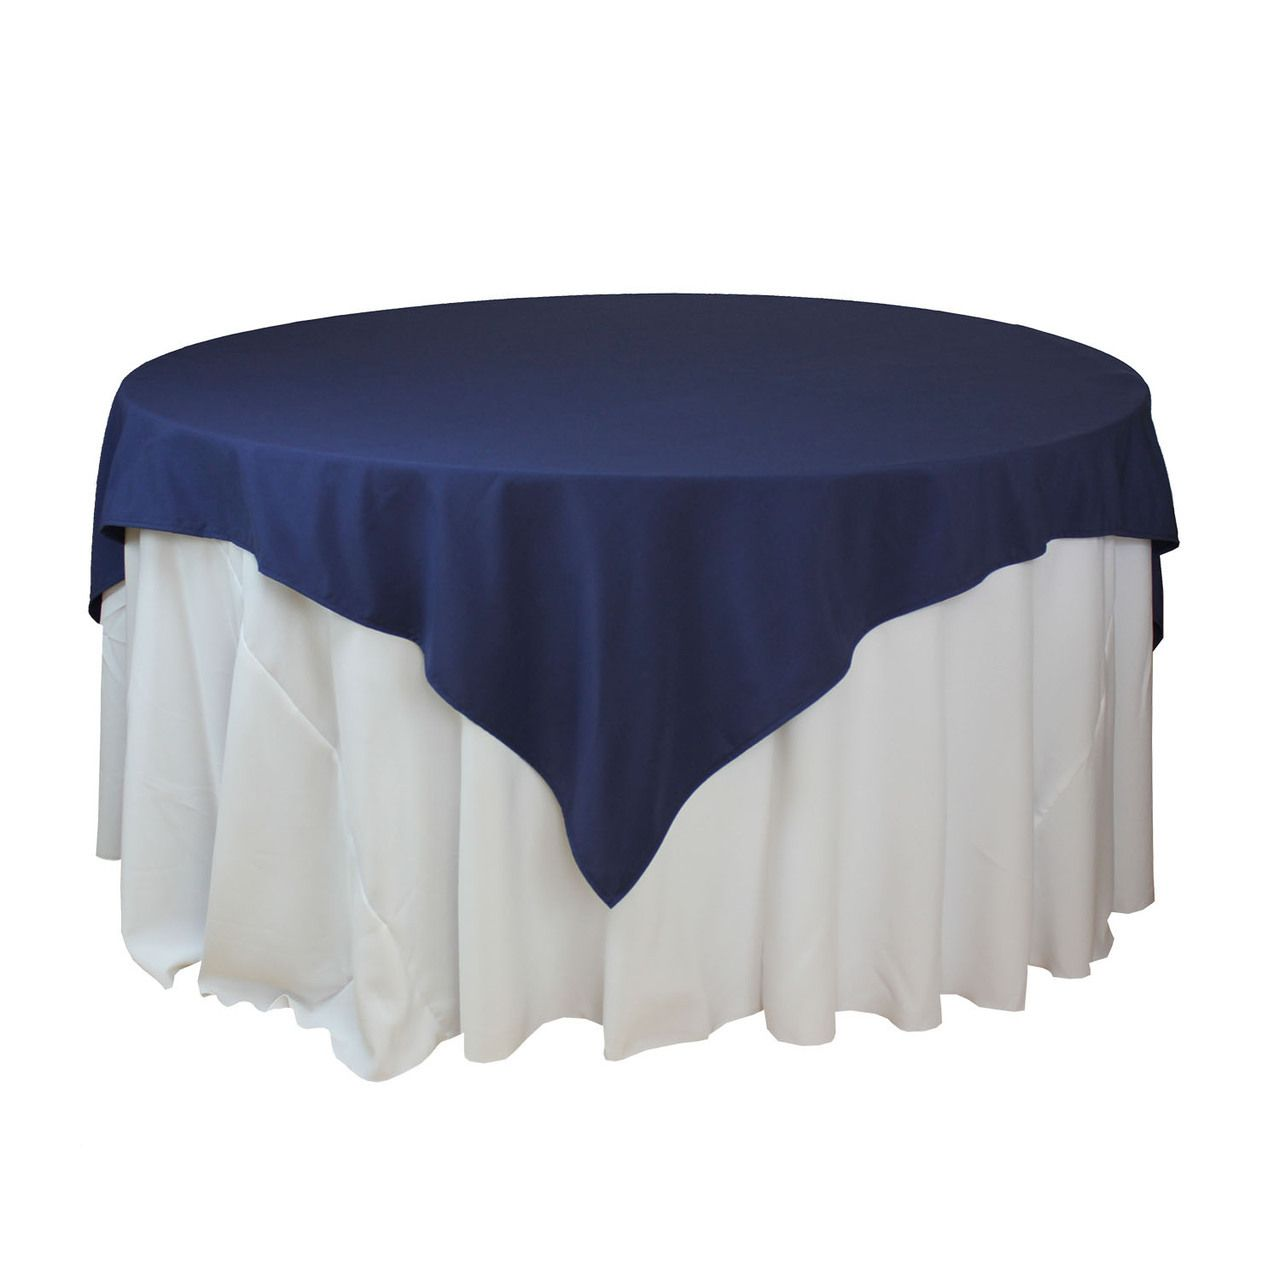 85 X 85 Inch Navy Blue Square Tablecloths Navy Blue Table